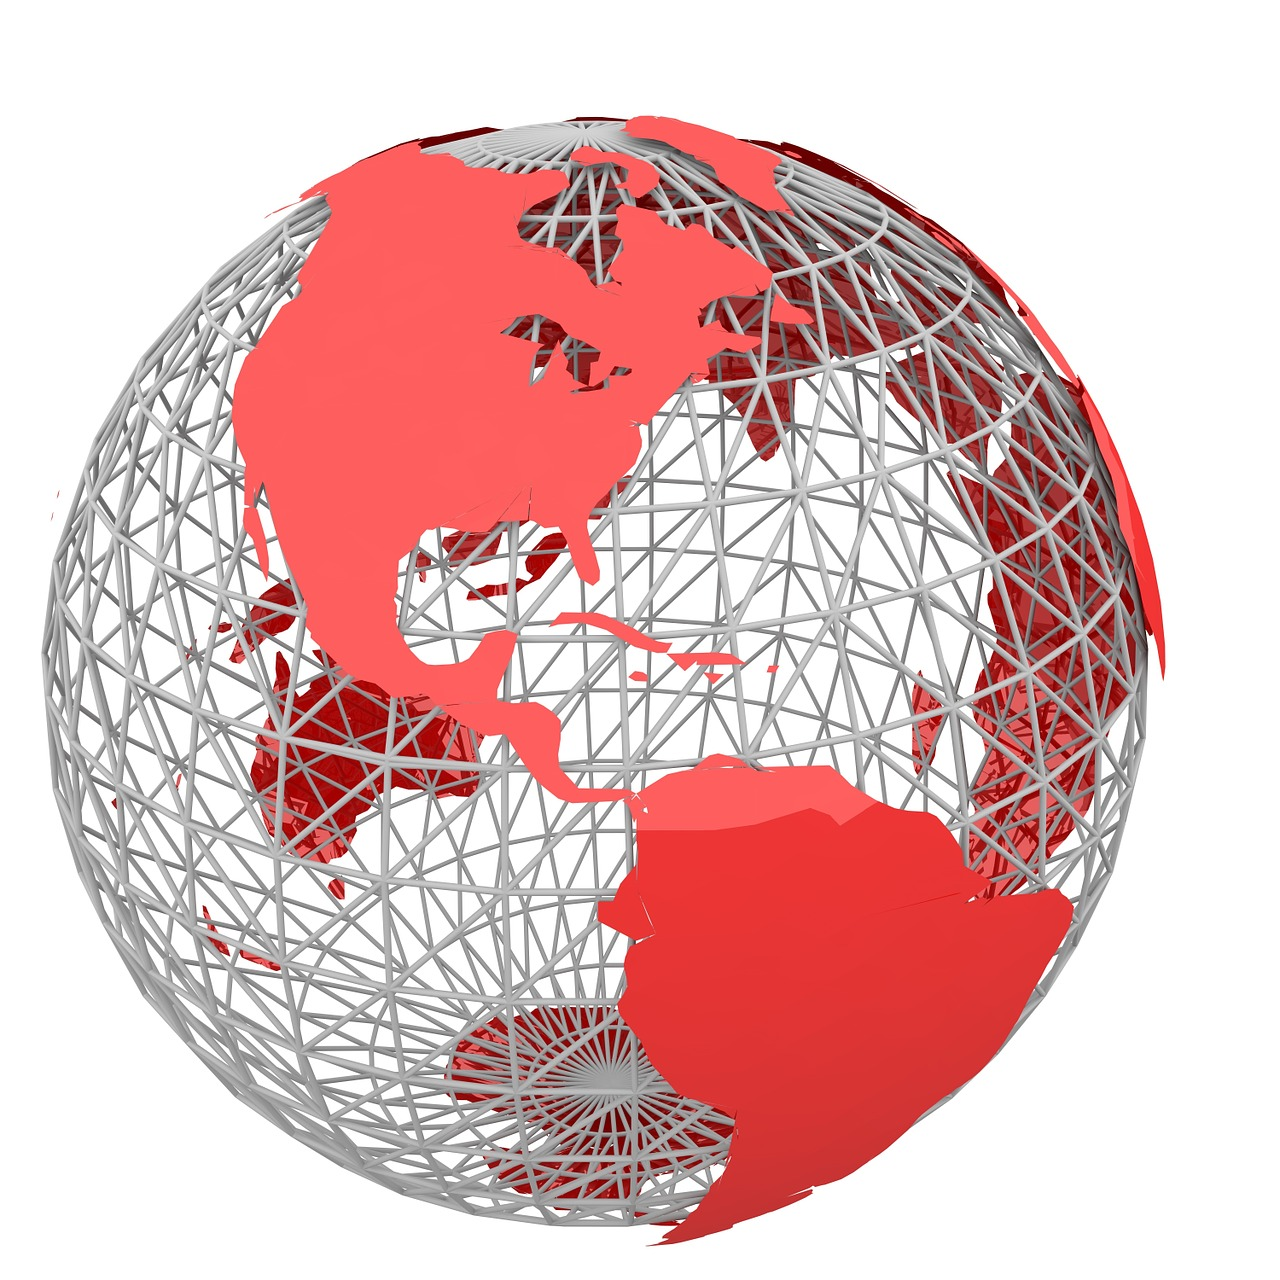 Wireframe sphere with a red metallic image of the global landmasses upon it.